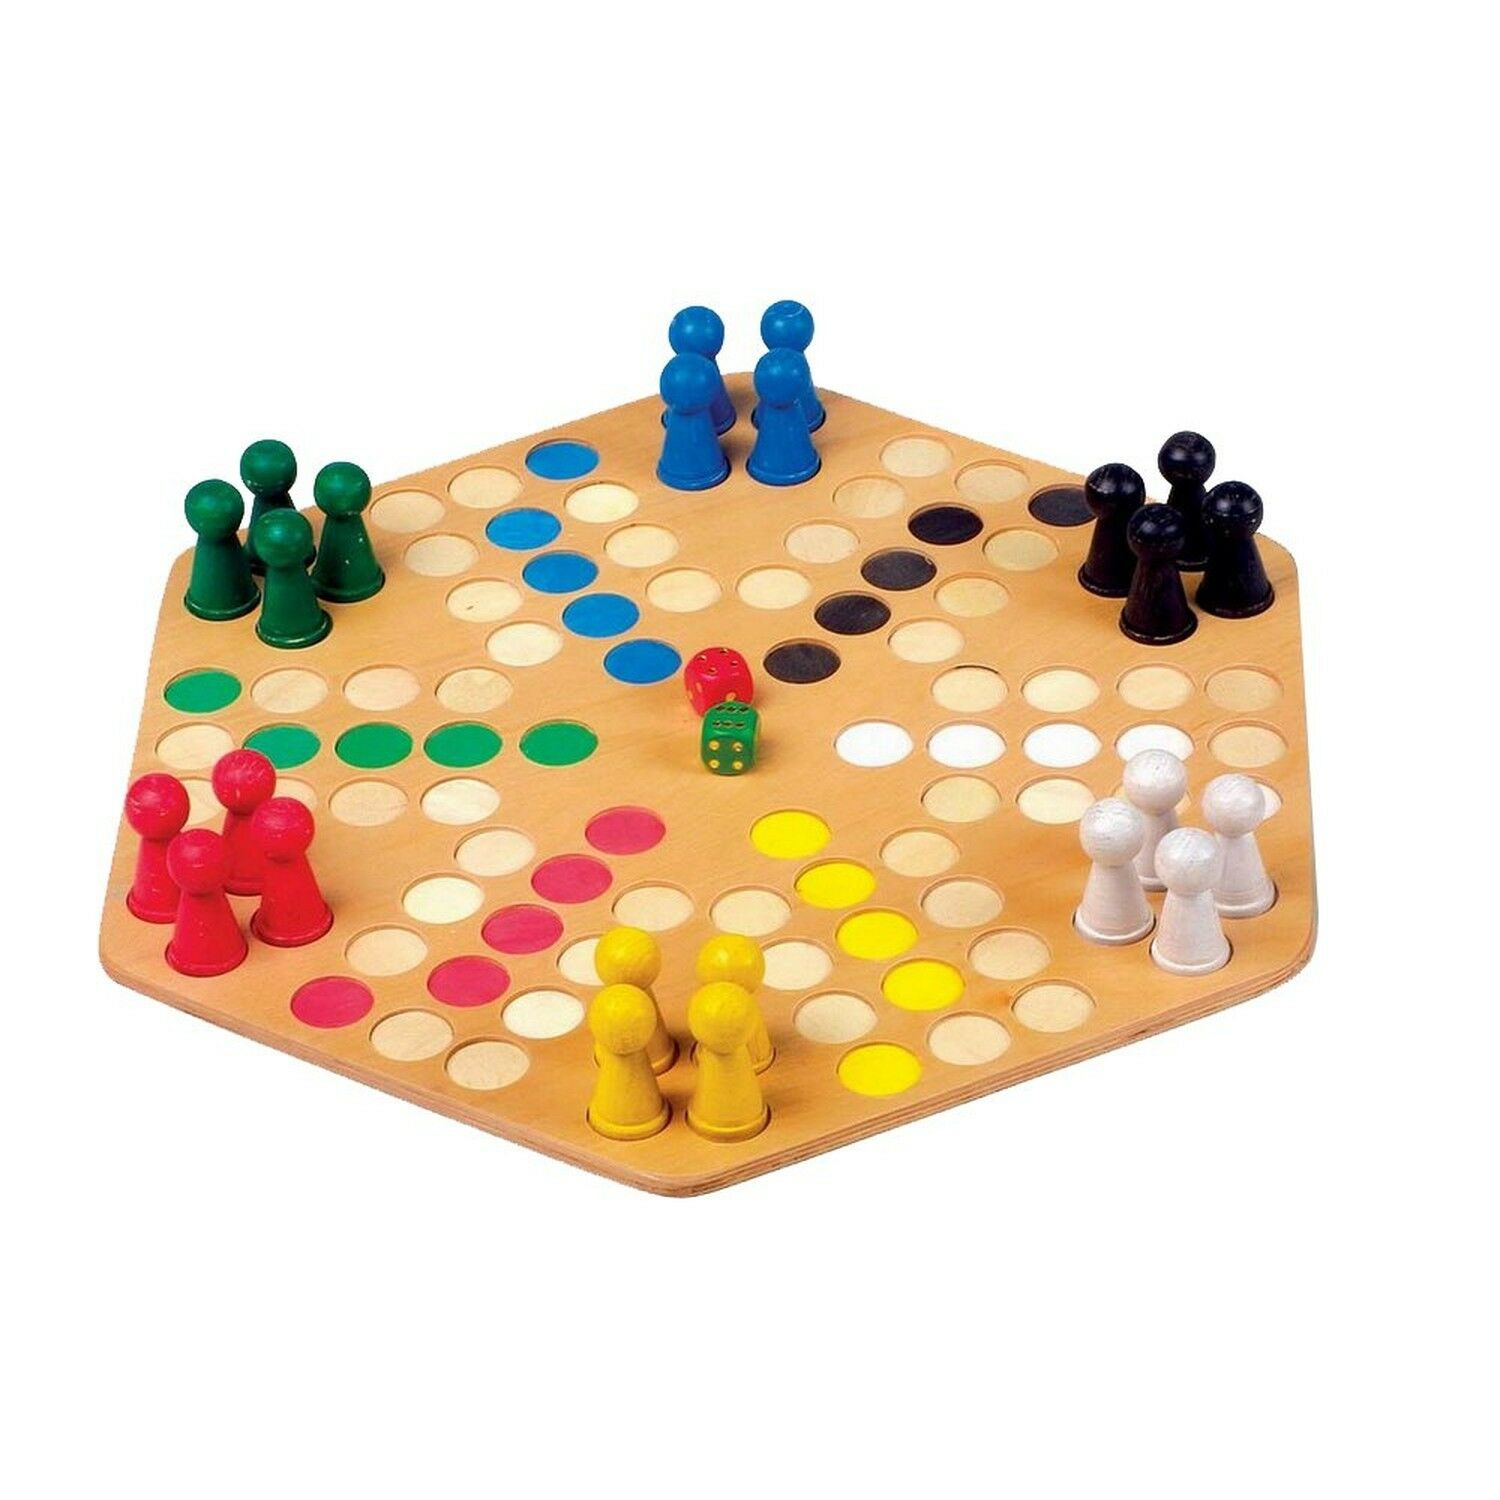 Legler Ludo for 6 Board Board Board Game a4f2b1